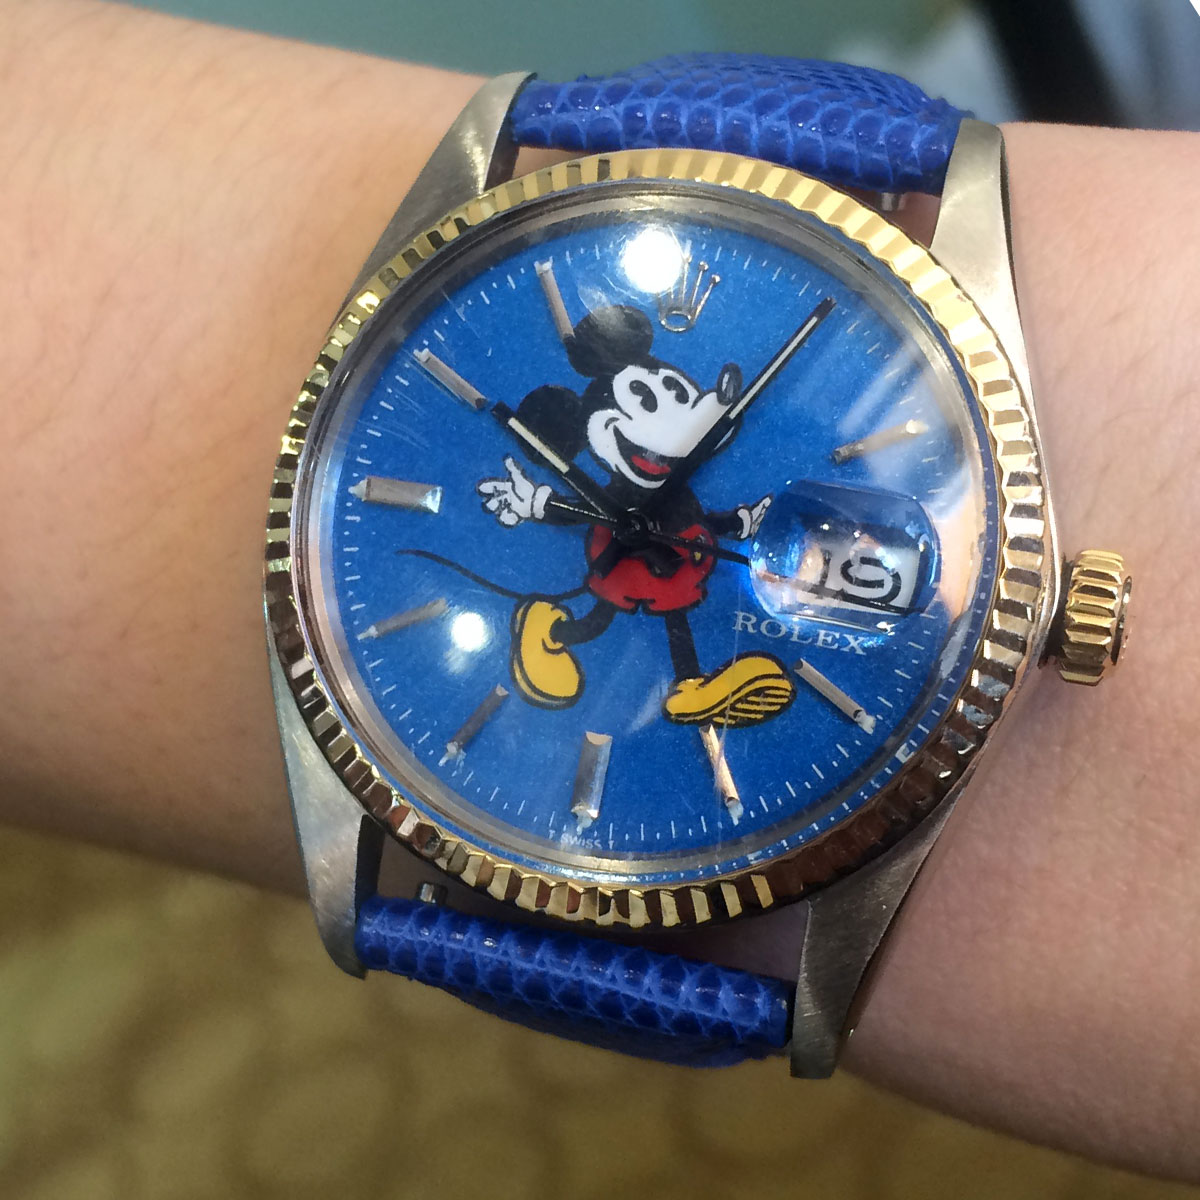 Rolex 16013 Datejust Mickey Mouse Dial Leather Strap Watch